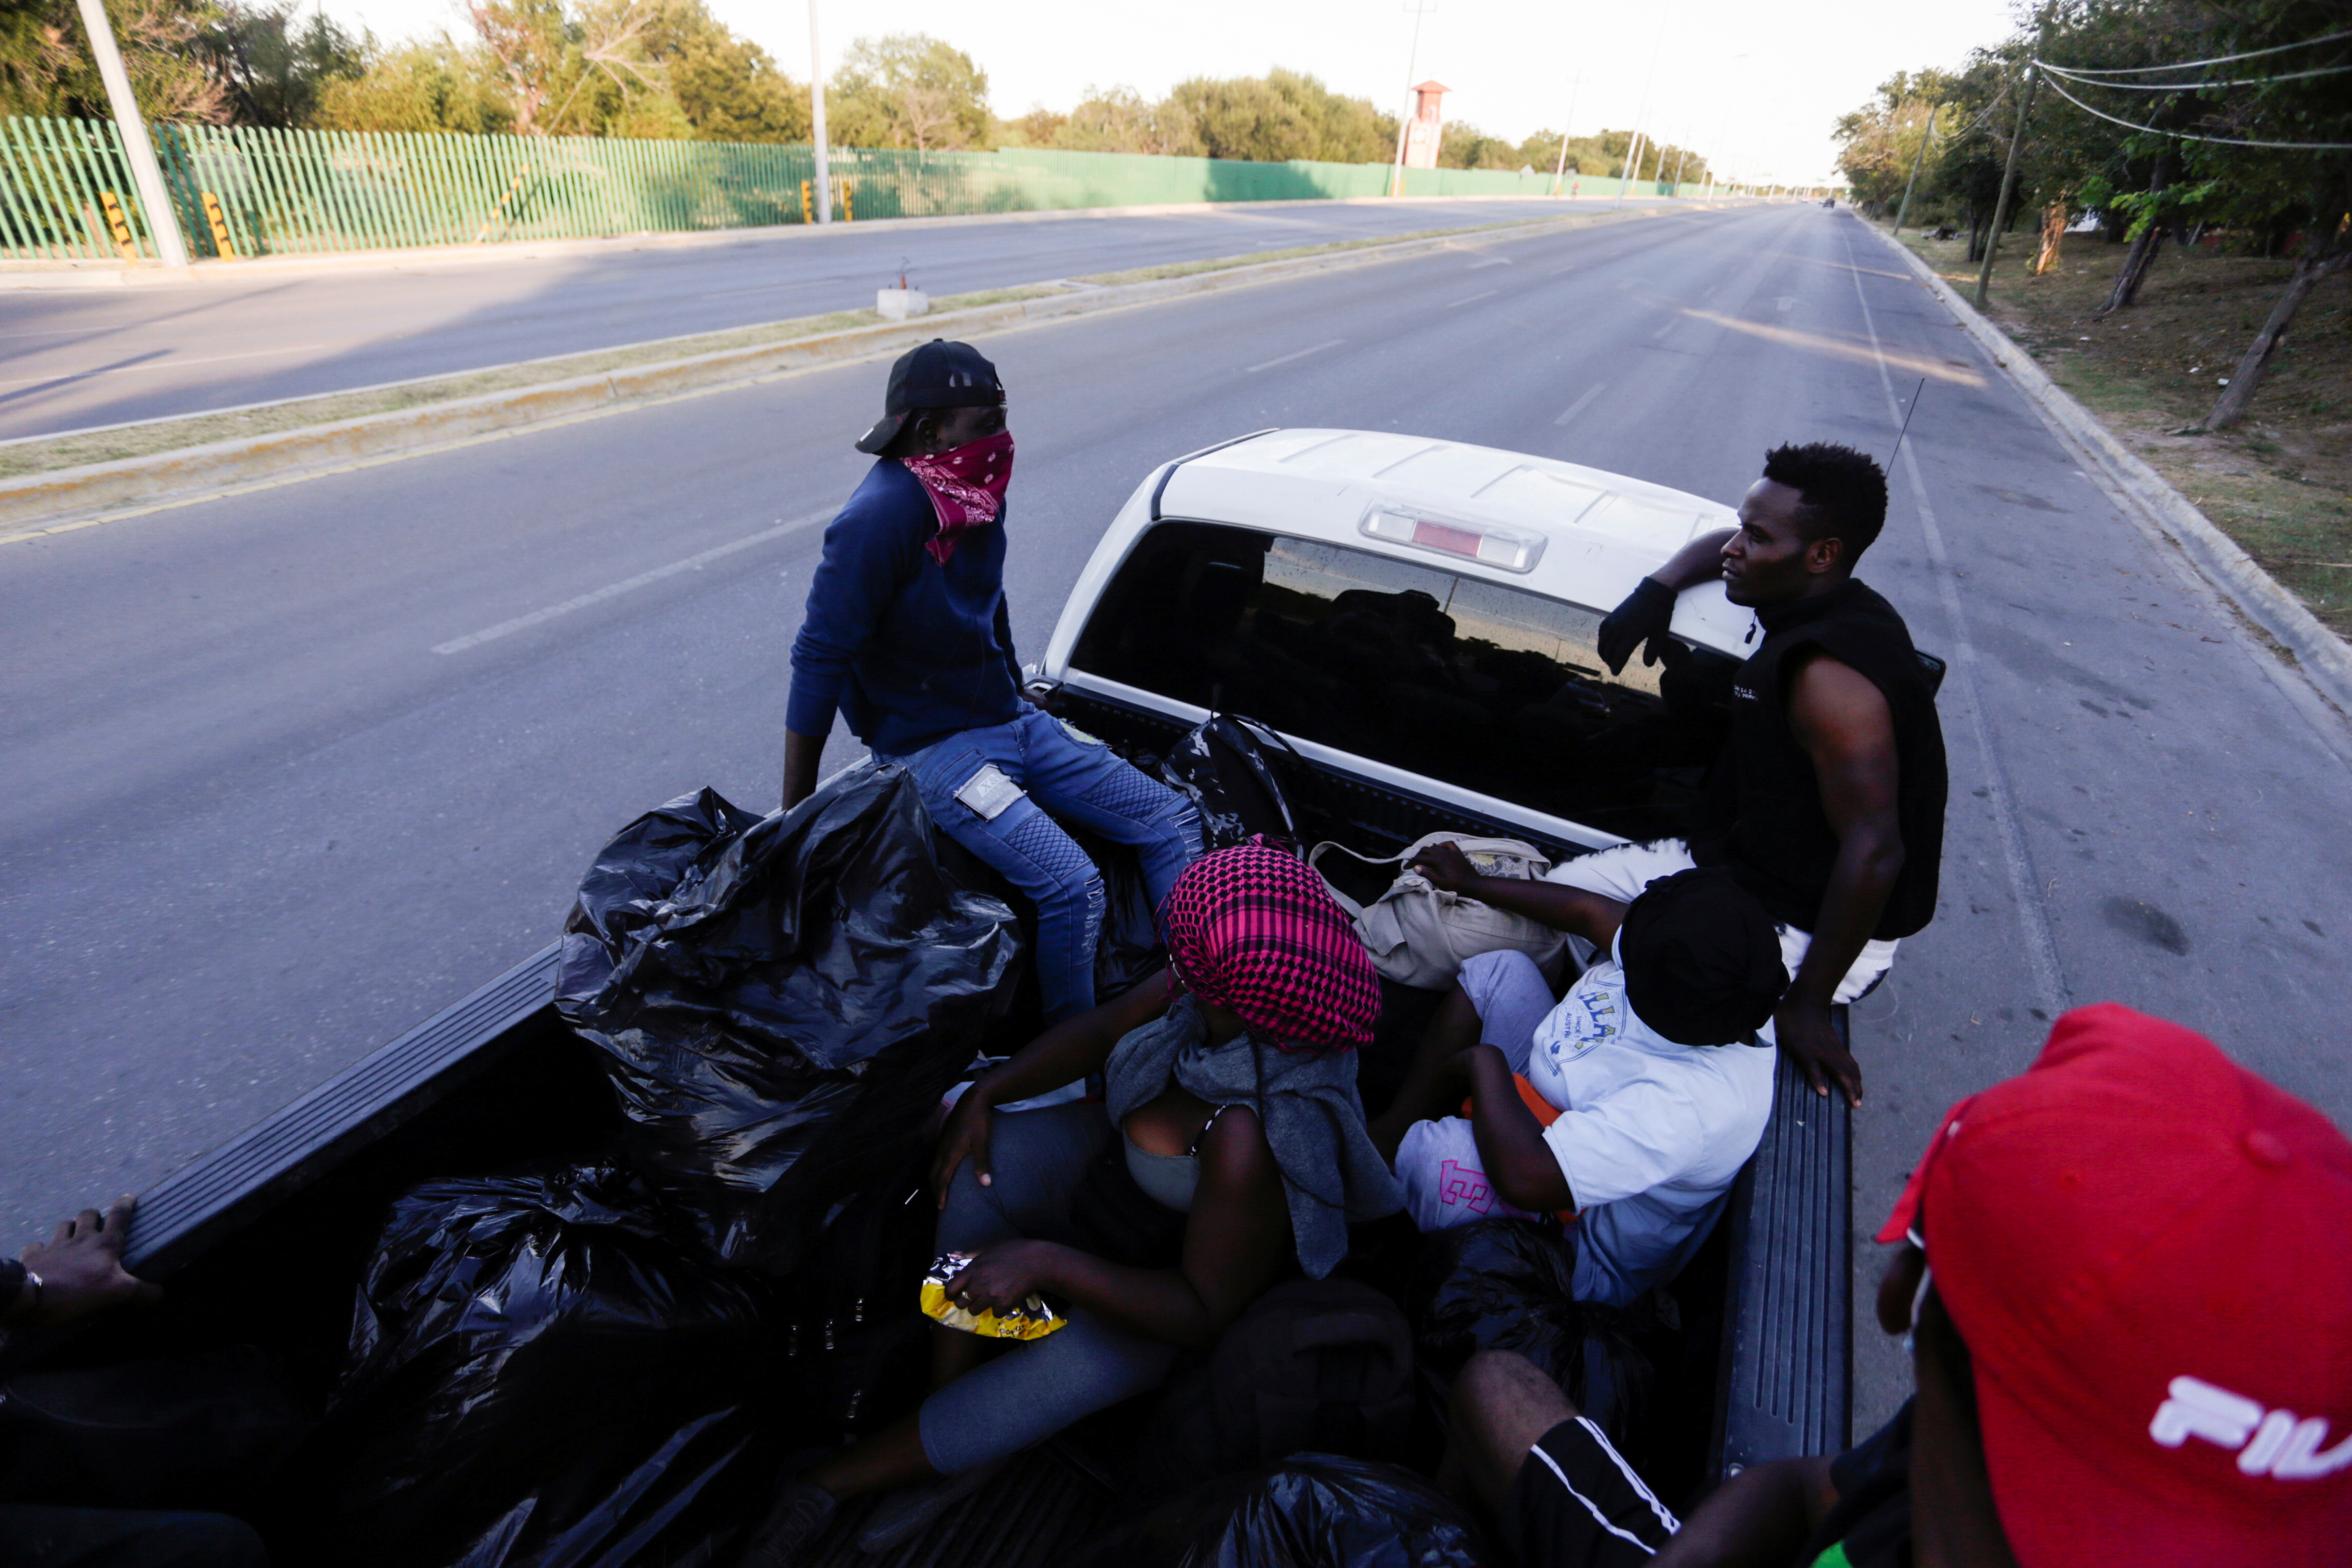 Migrants are driven to a fixed shelter from a makeshift camp near the border with the U.S., in Ciudad Acuna, Mexico, September 24, 2021. REUTERS/Daniel Becerril